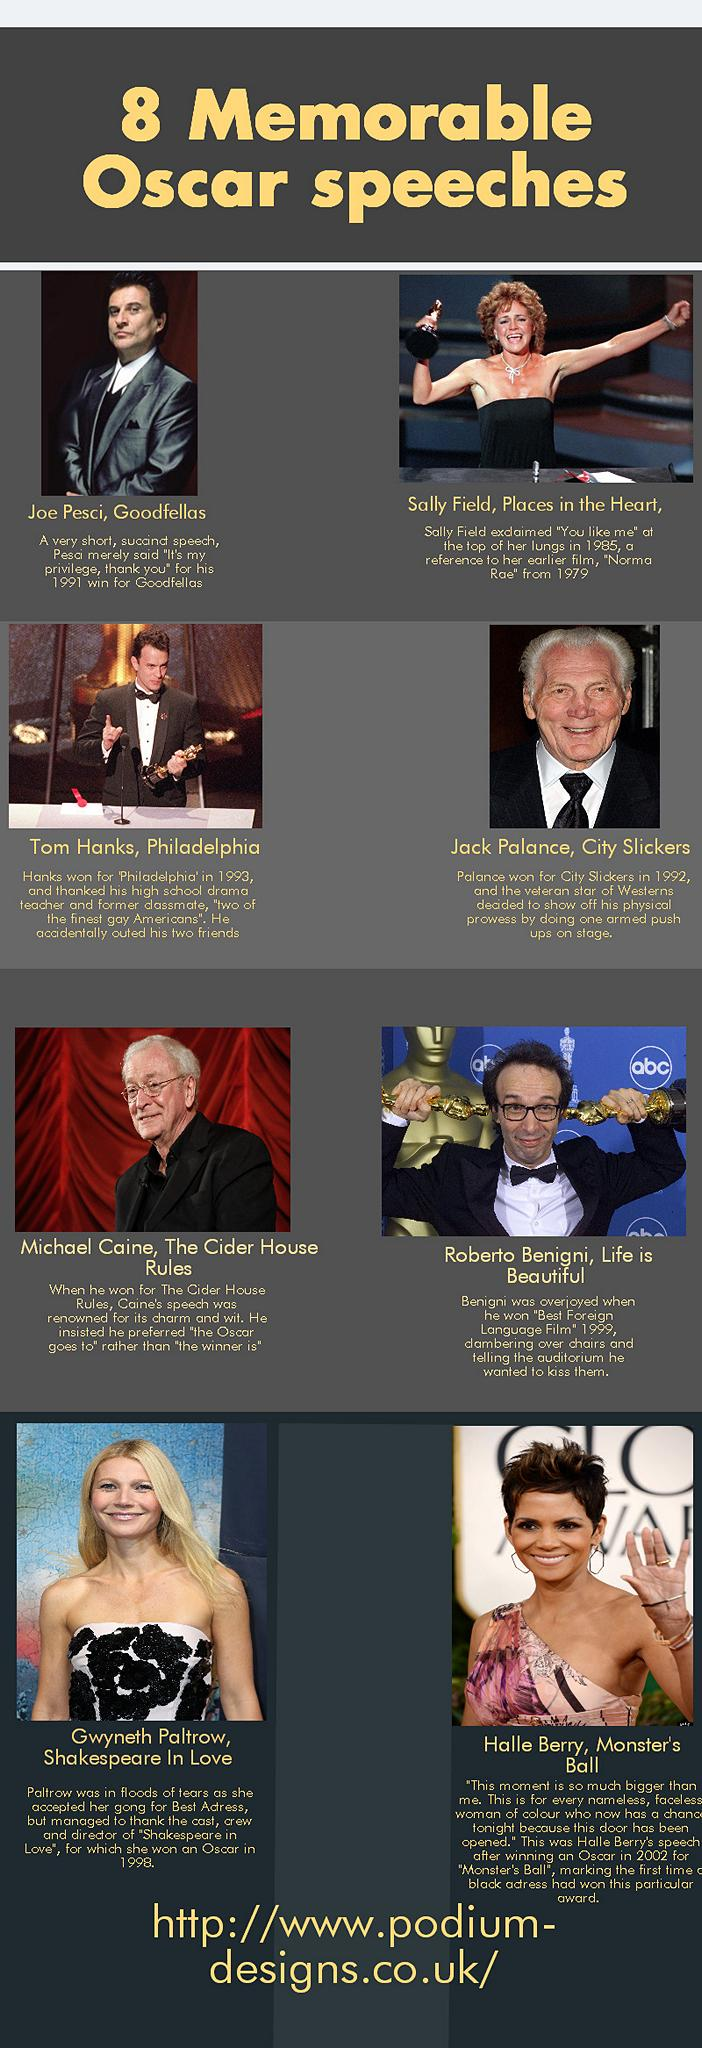 8-memorable-oscar-speeches_534f9ef5452e7